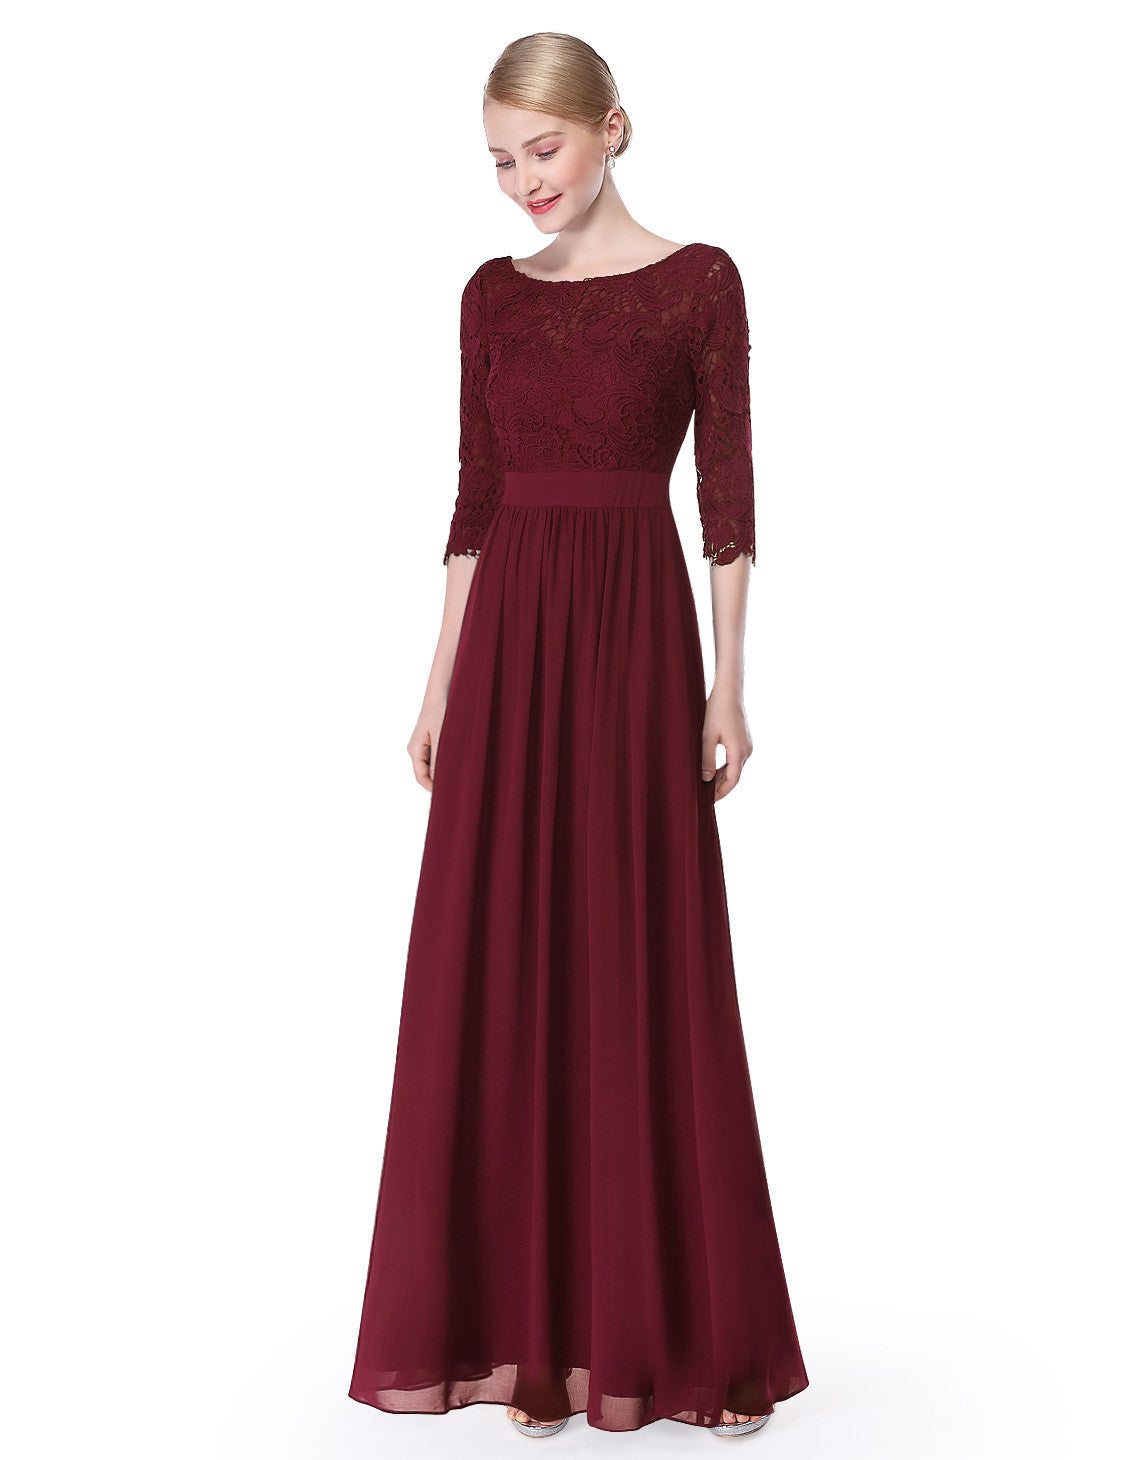 Obeige Elegant Burgundy 3/4 Sleeve Lace Long Evening Dress